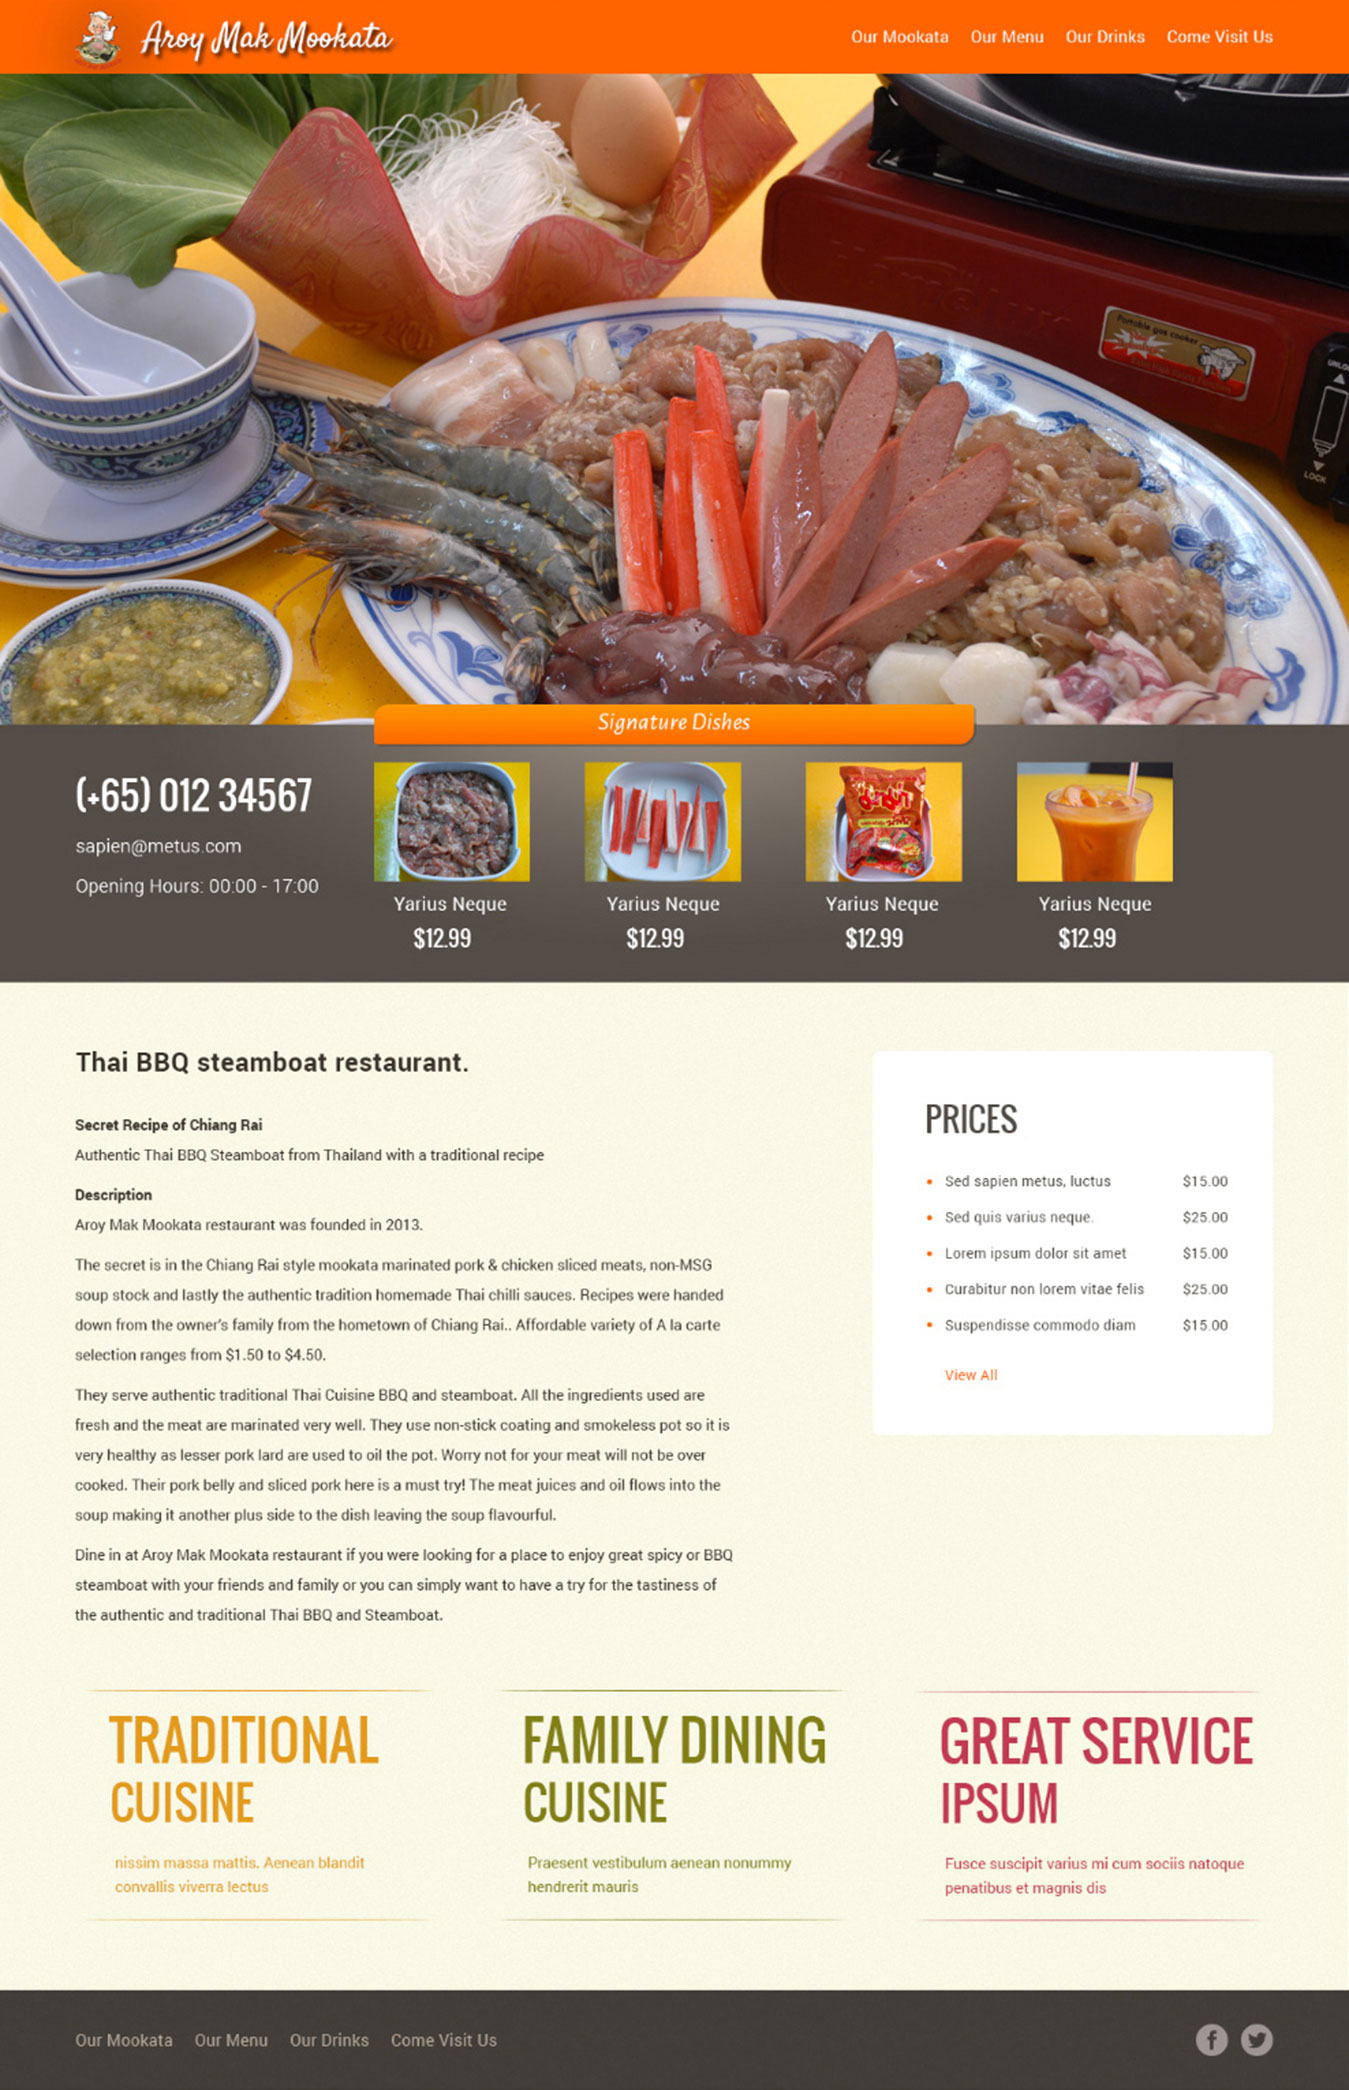 WordPress CMS Website Design for Steamboat Restaurant